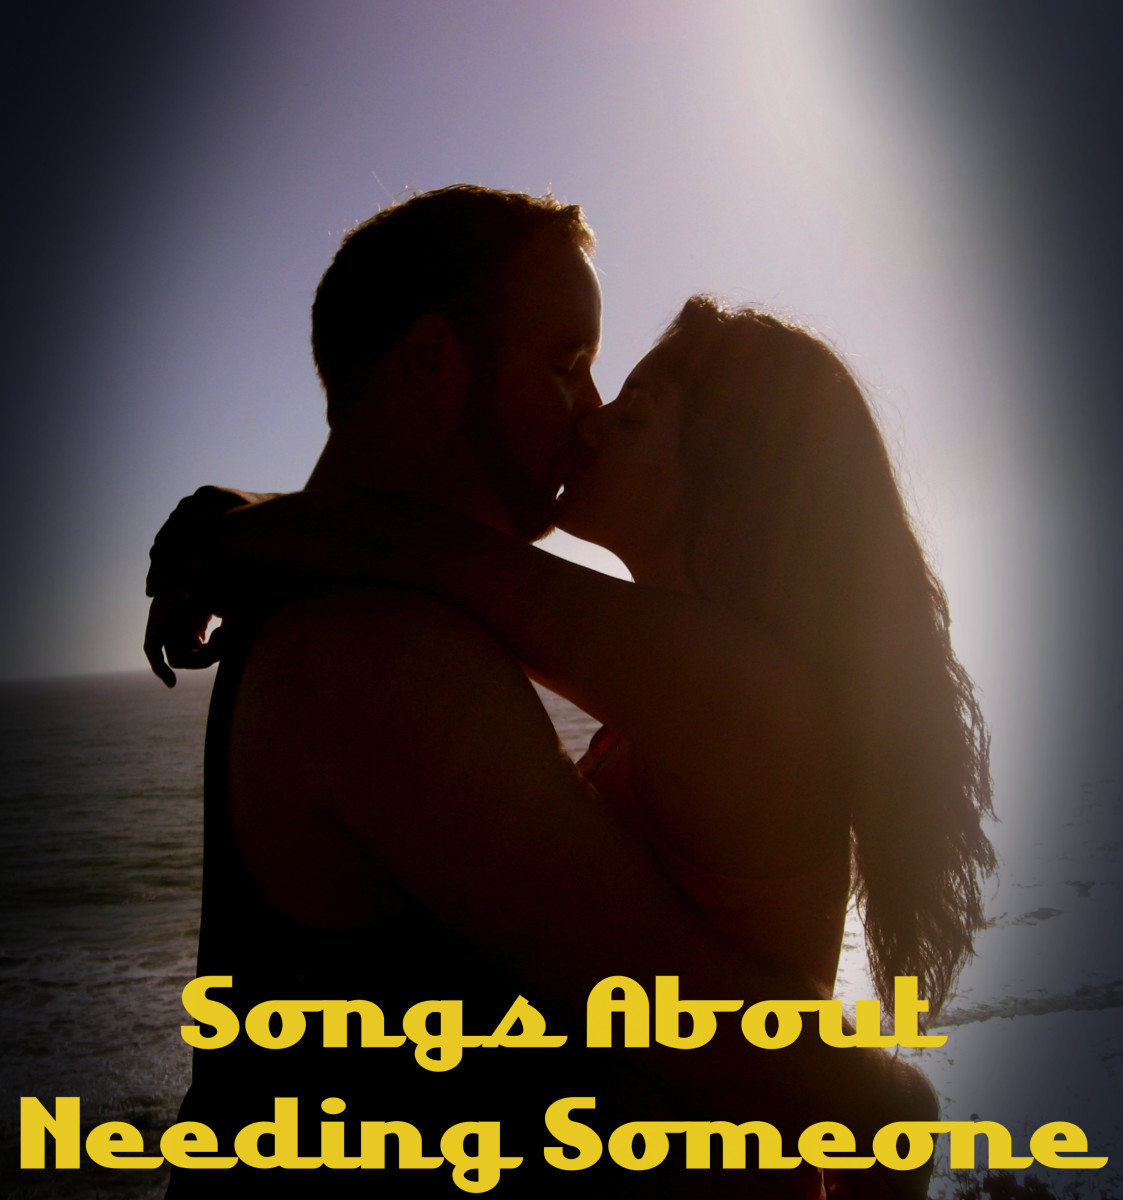 55 Songs About Needing Someone